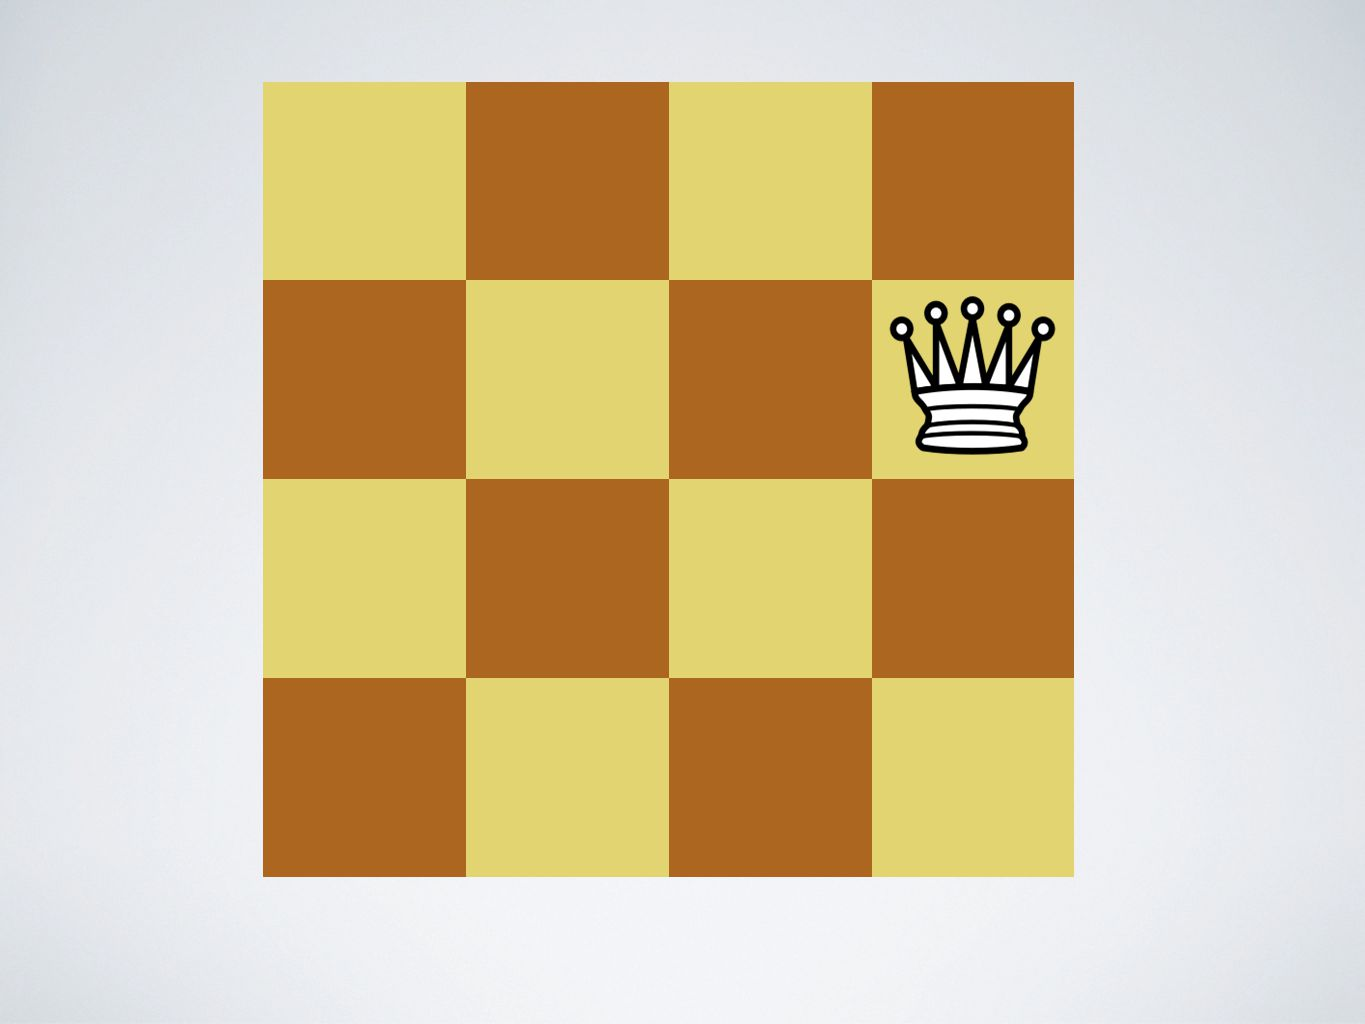 A1. Control: The queen takes the pawn.